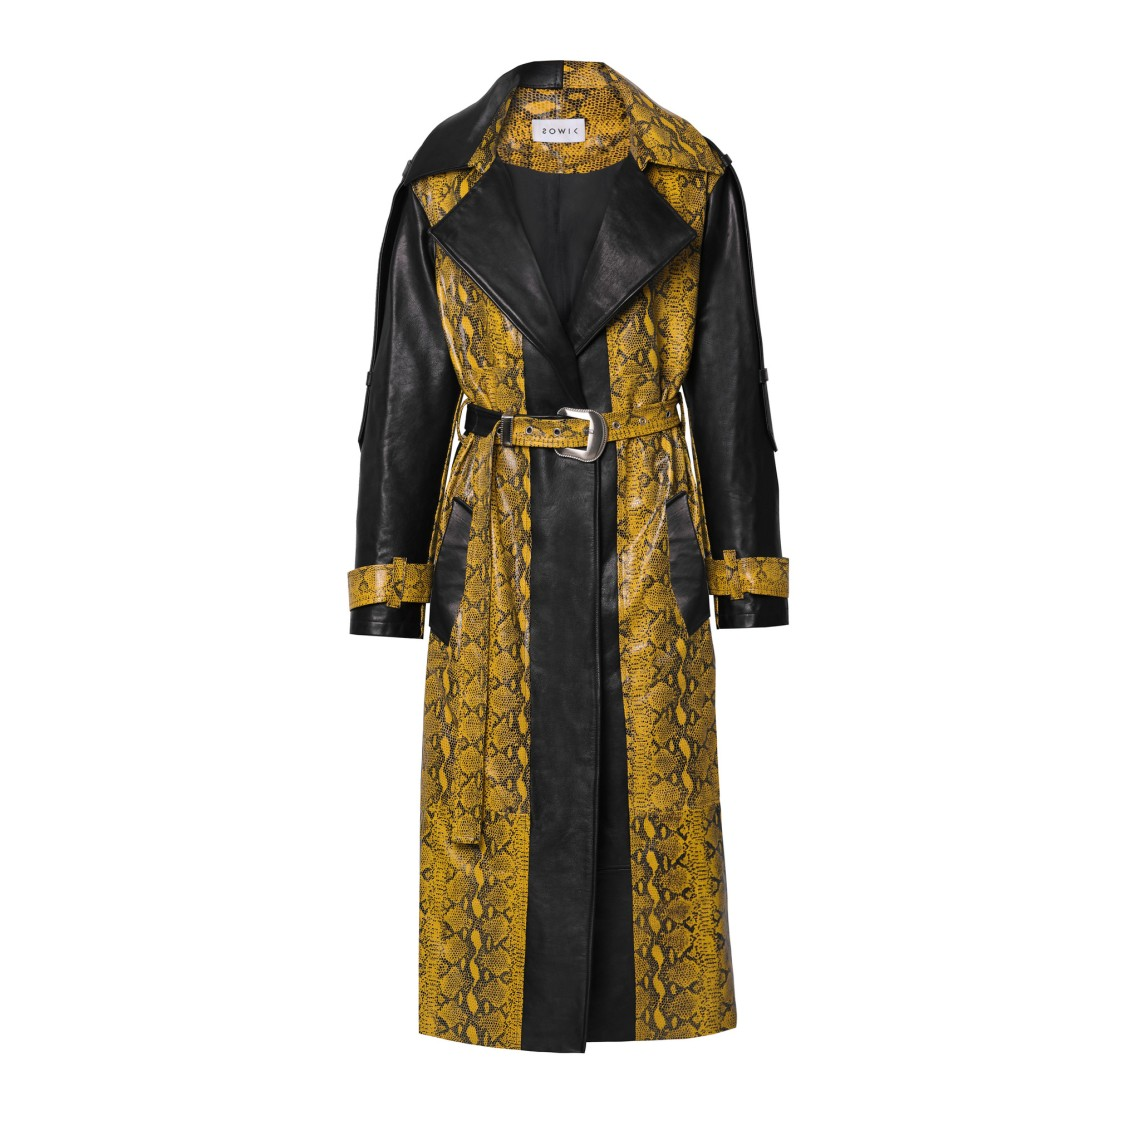 60-sowik_yellowpythonprintleathercoat.jpeg